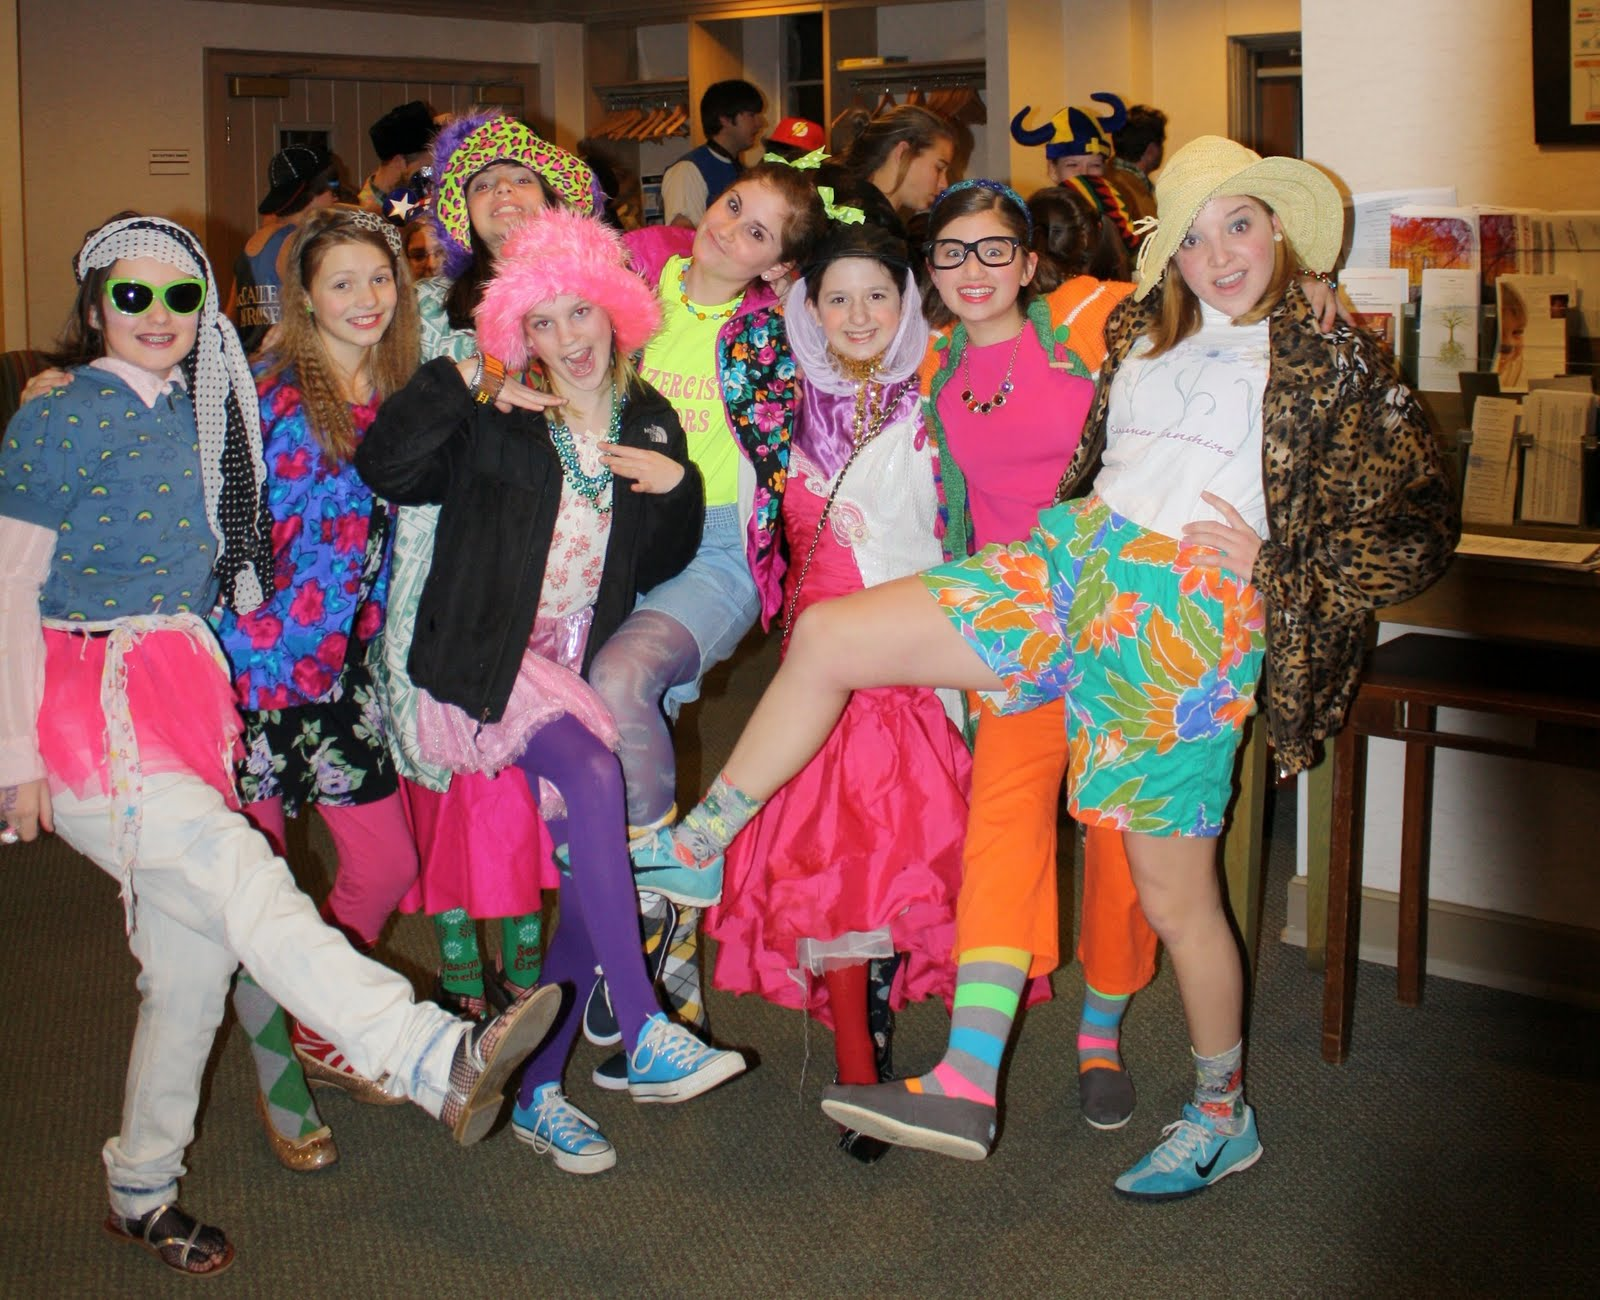 Tacky Day Ideas http://littlebethwilkening.blogspot.com/2011/02/tacky-clothes-silly-girls-basketball_05.html